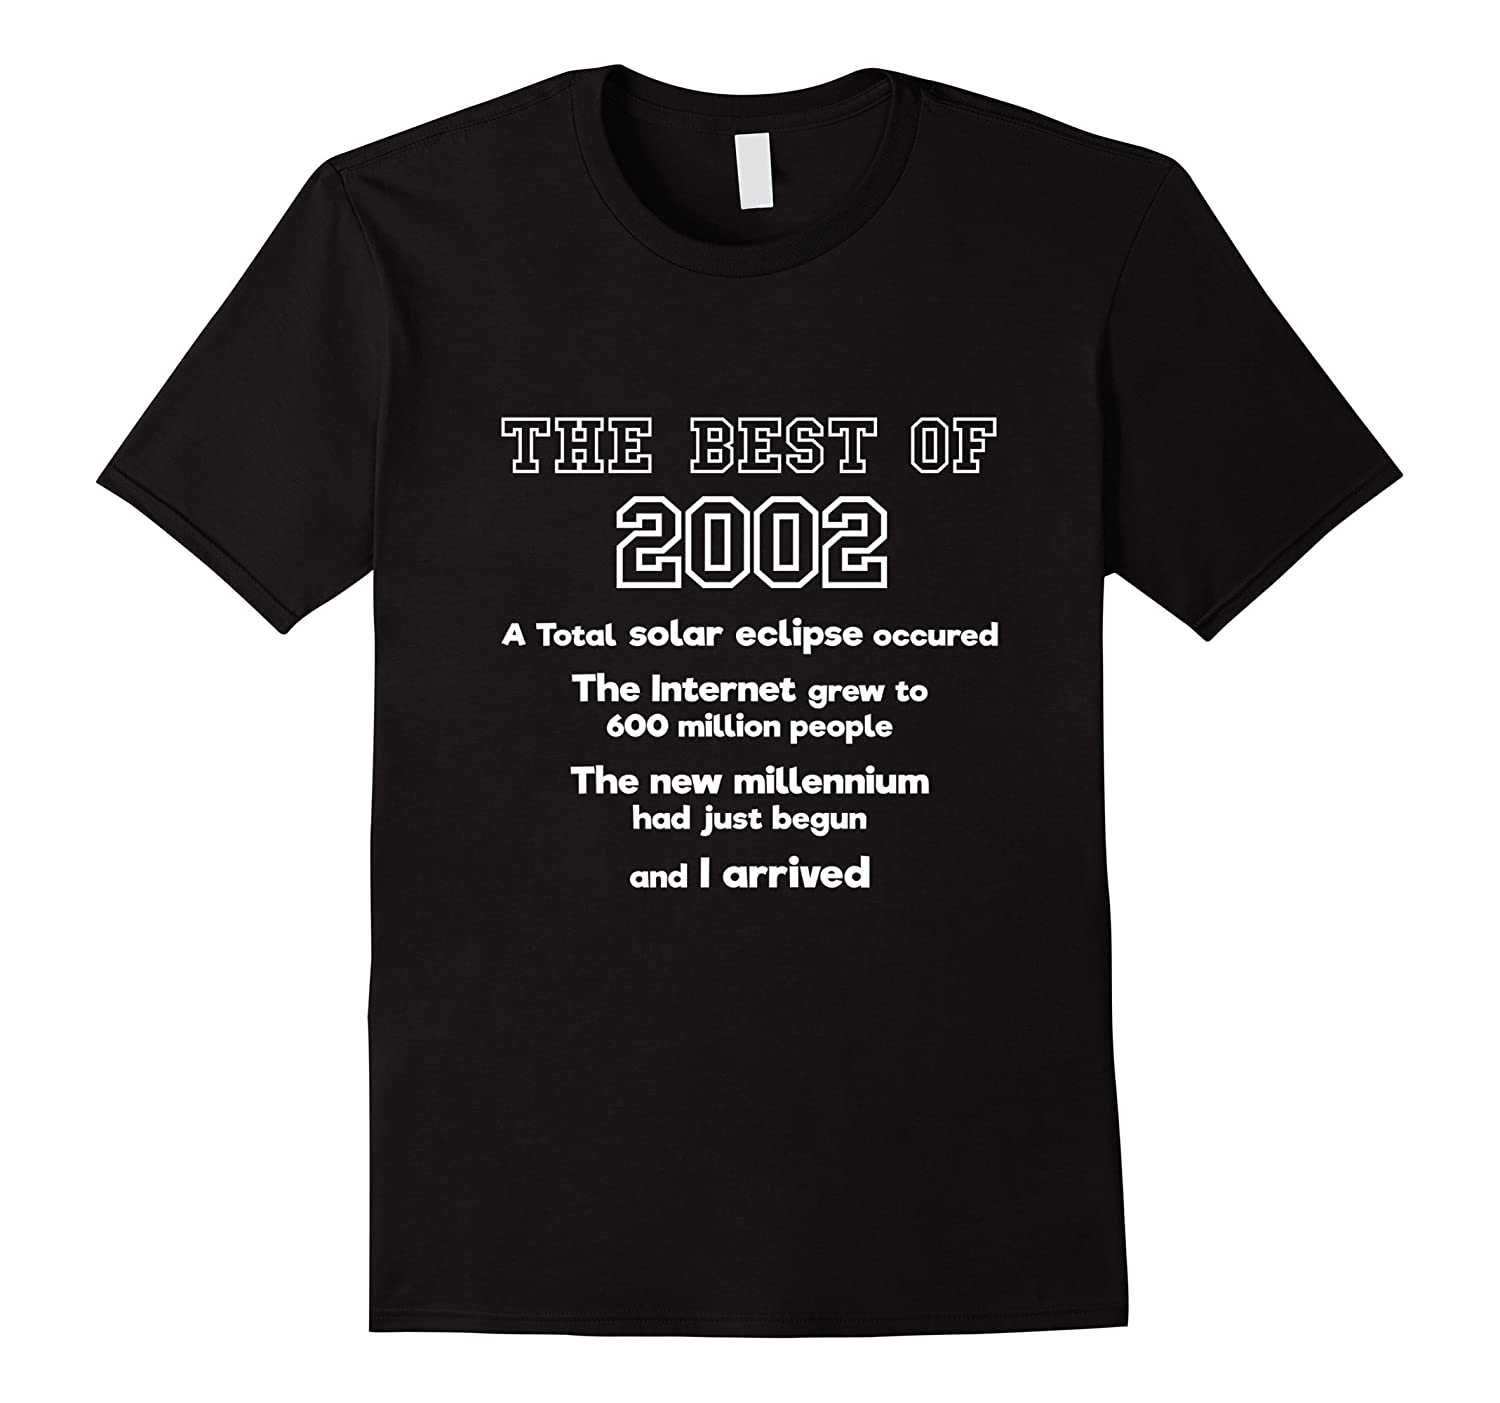 2002 15th birthday t shirt gift for 15 year old boys girls for T shirts for 15 year olds